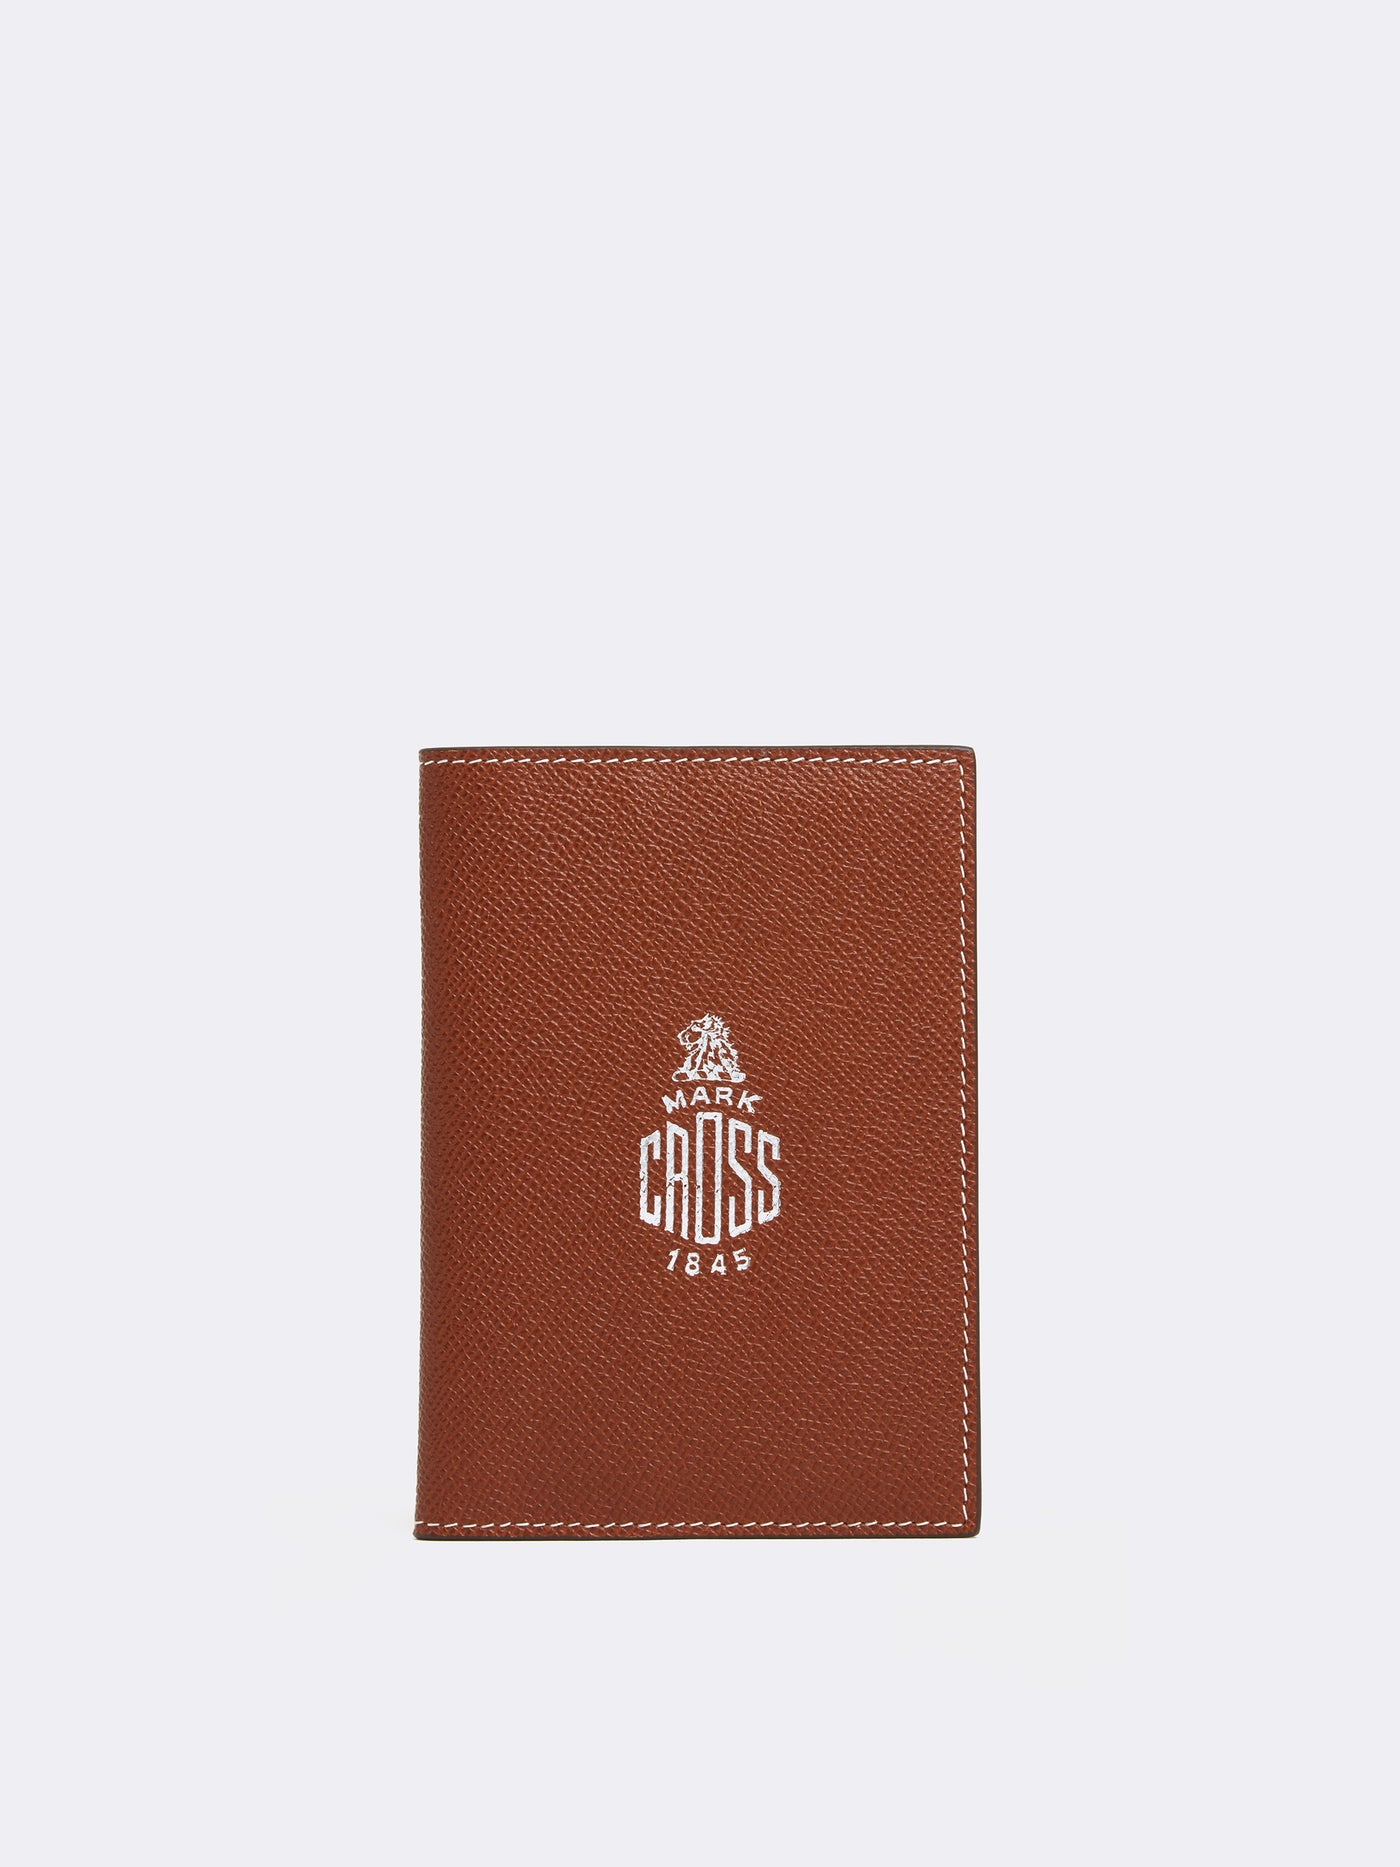 Mark Cross Leather Passport Cover Saffiano Acorn Front